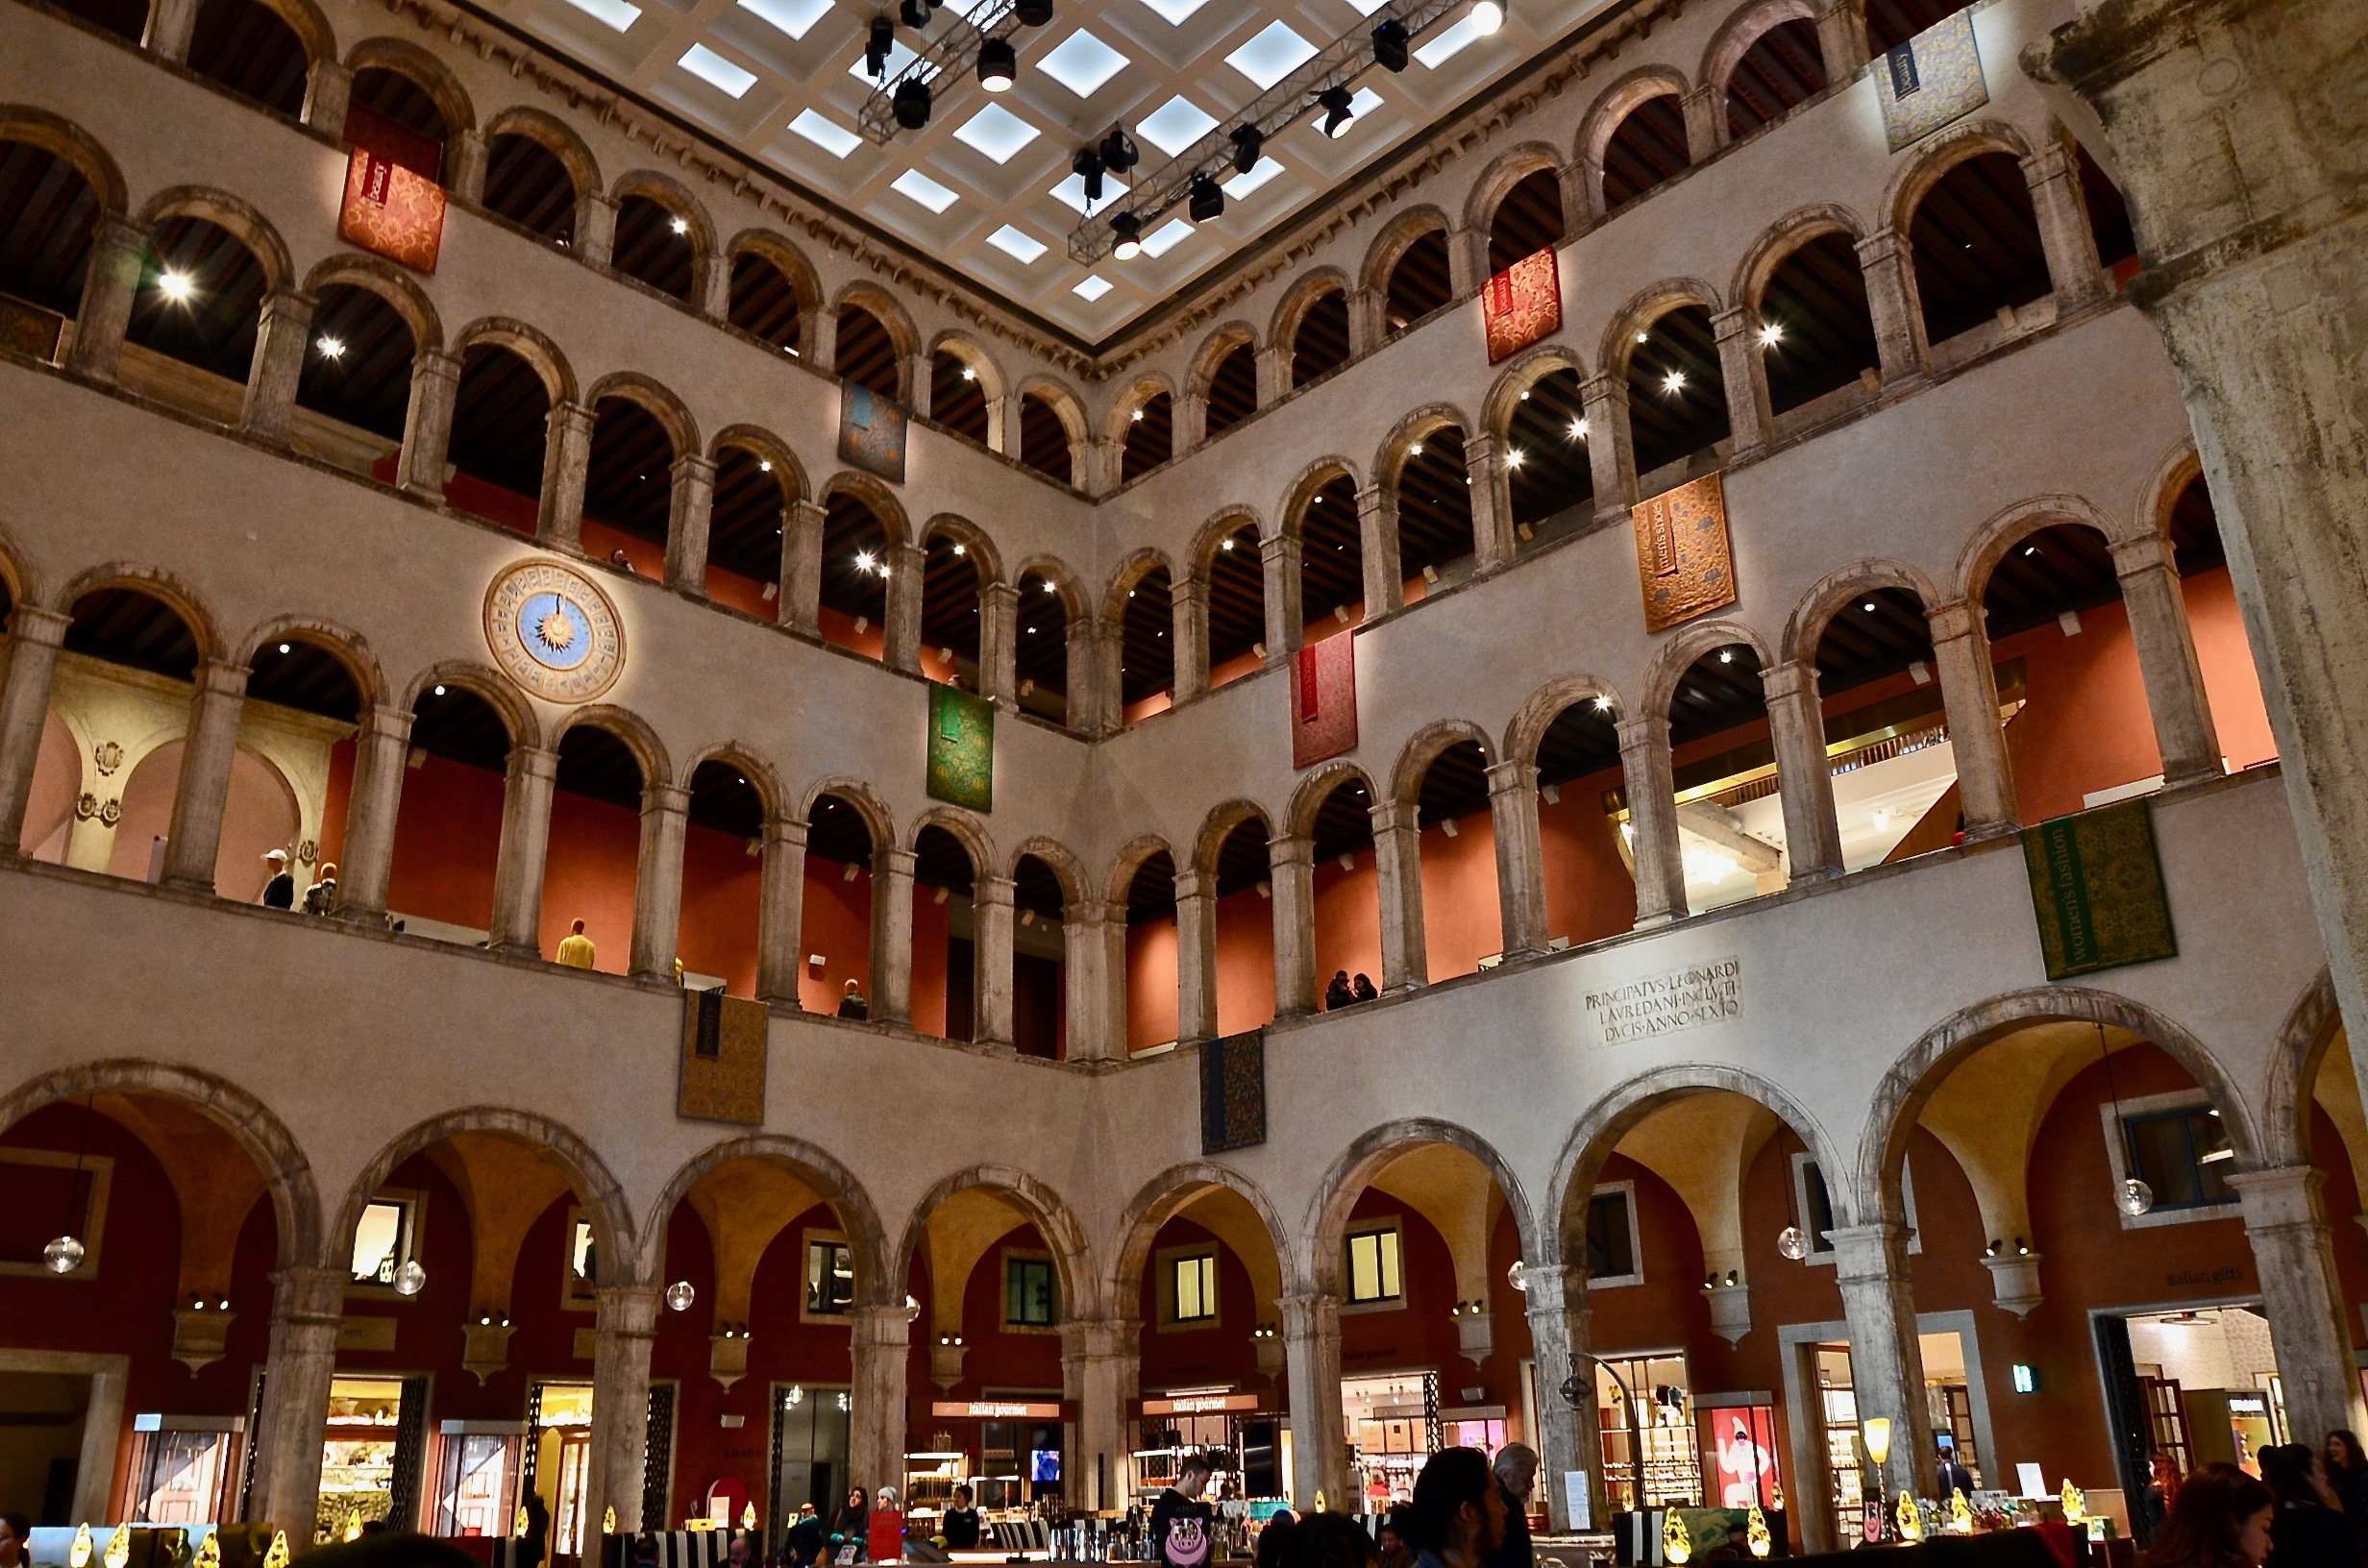 A shot of Fondaco dei Tedeschi, the new mecca for luxury shopping in Venice. Astonishing place.  Photo Credit: @LucaMontini